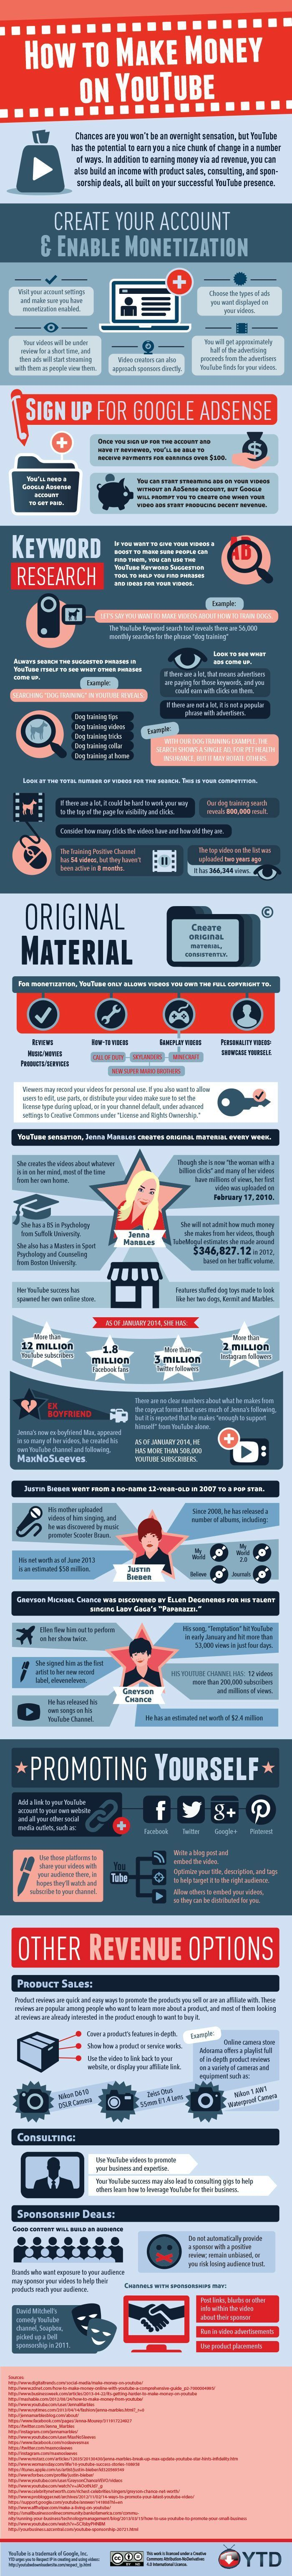 5 Simple Steps To Make Money With YouTube infographic